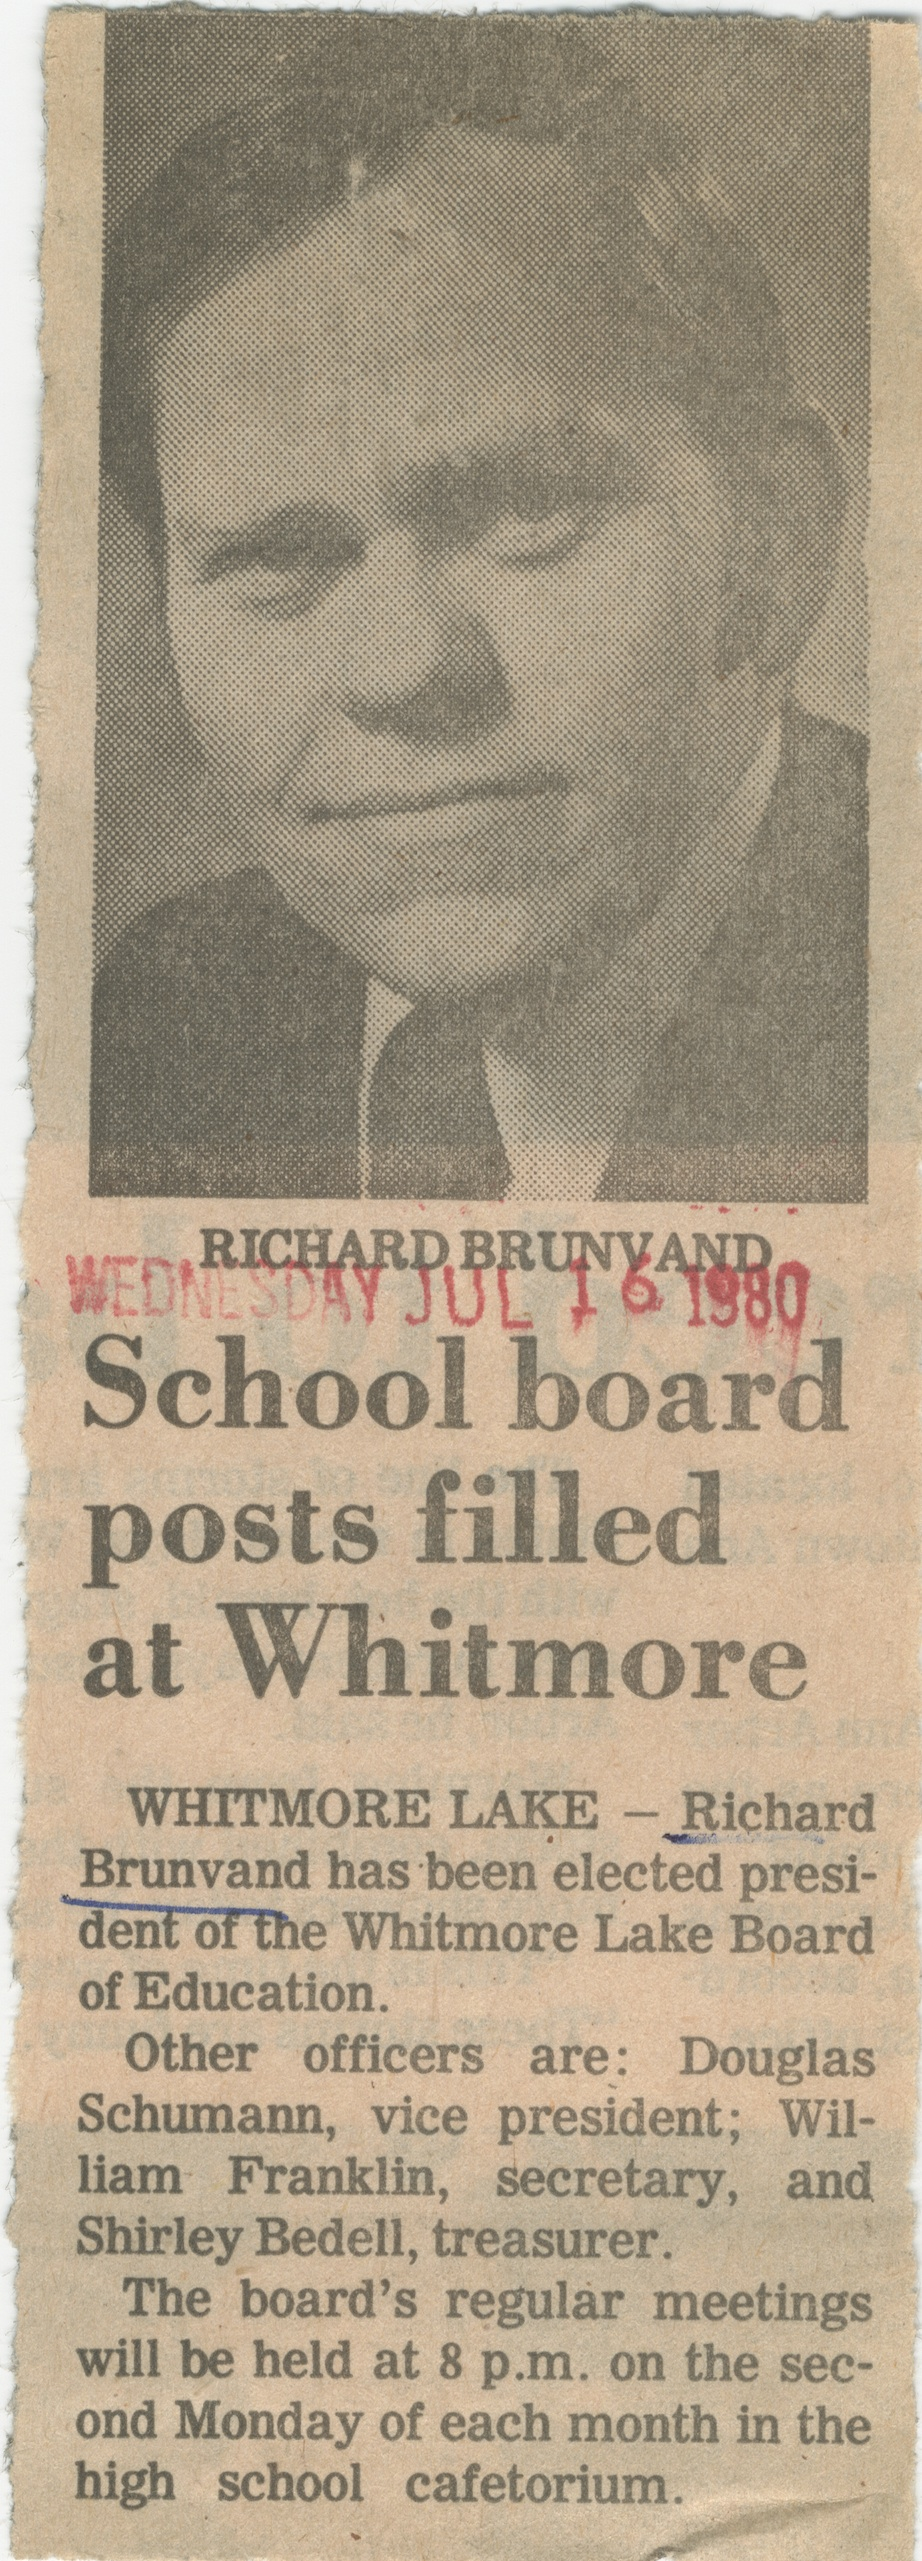 School Board Posts Filled At Whitmore image